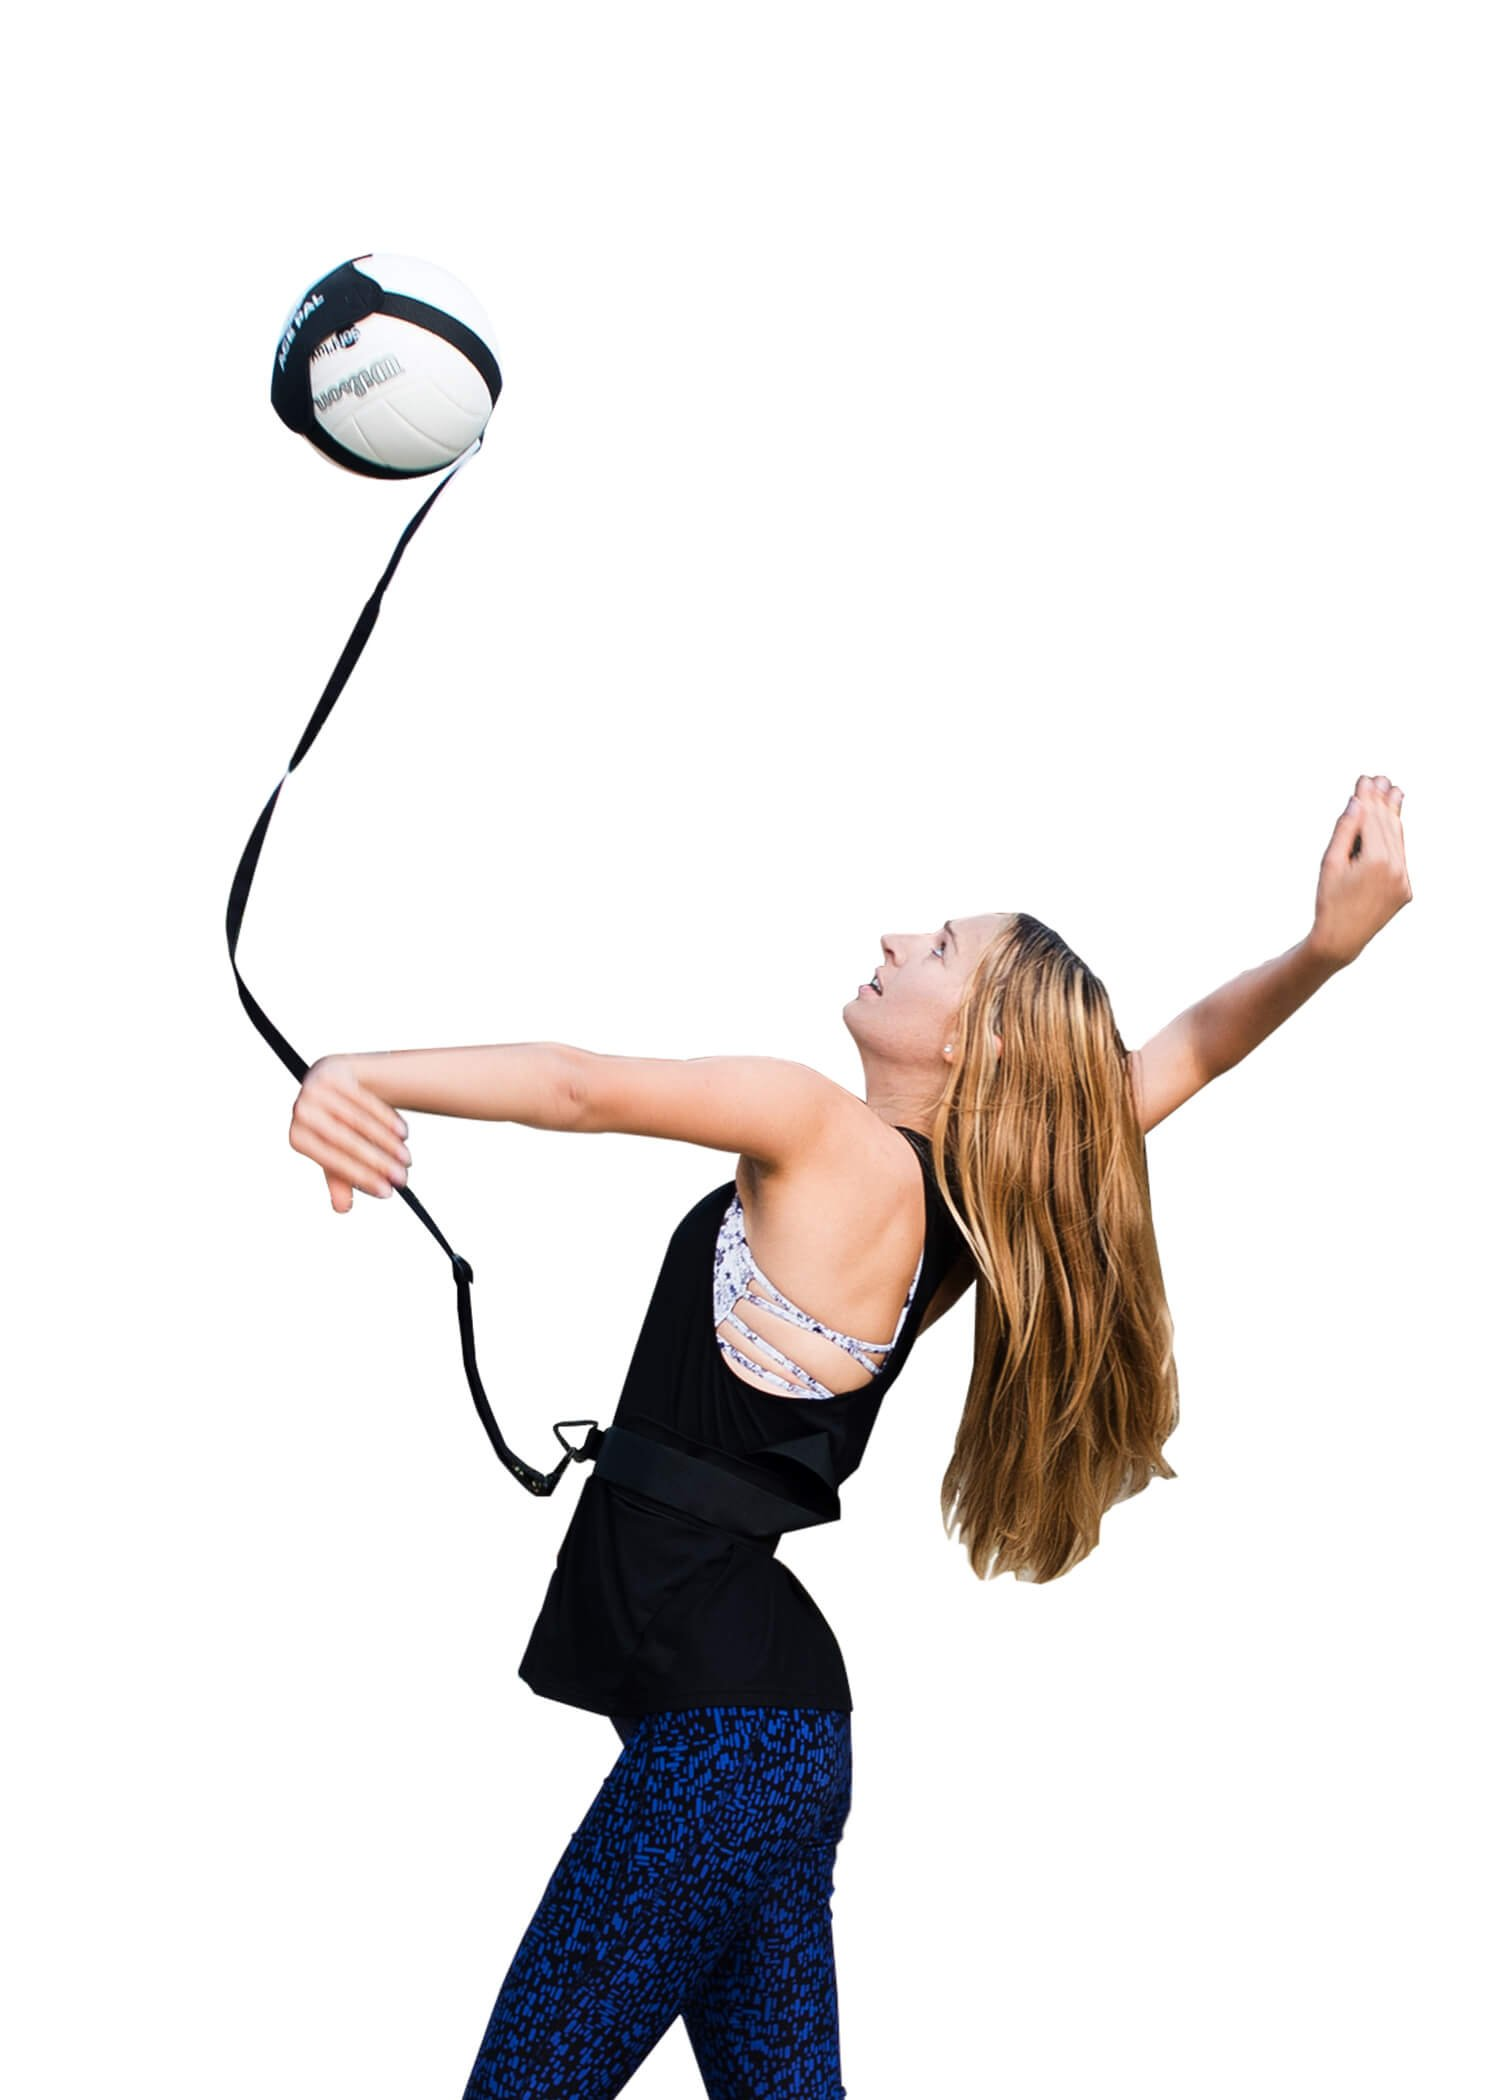 Volleyball Training Equipment Aid - Solo practice for Serving and Arm Swings trainer - Serving like a pro with the Right Equipment